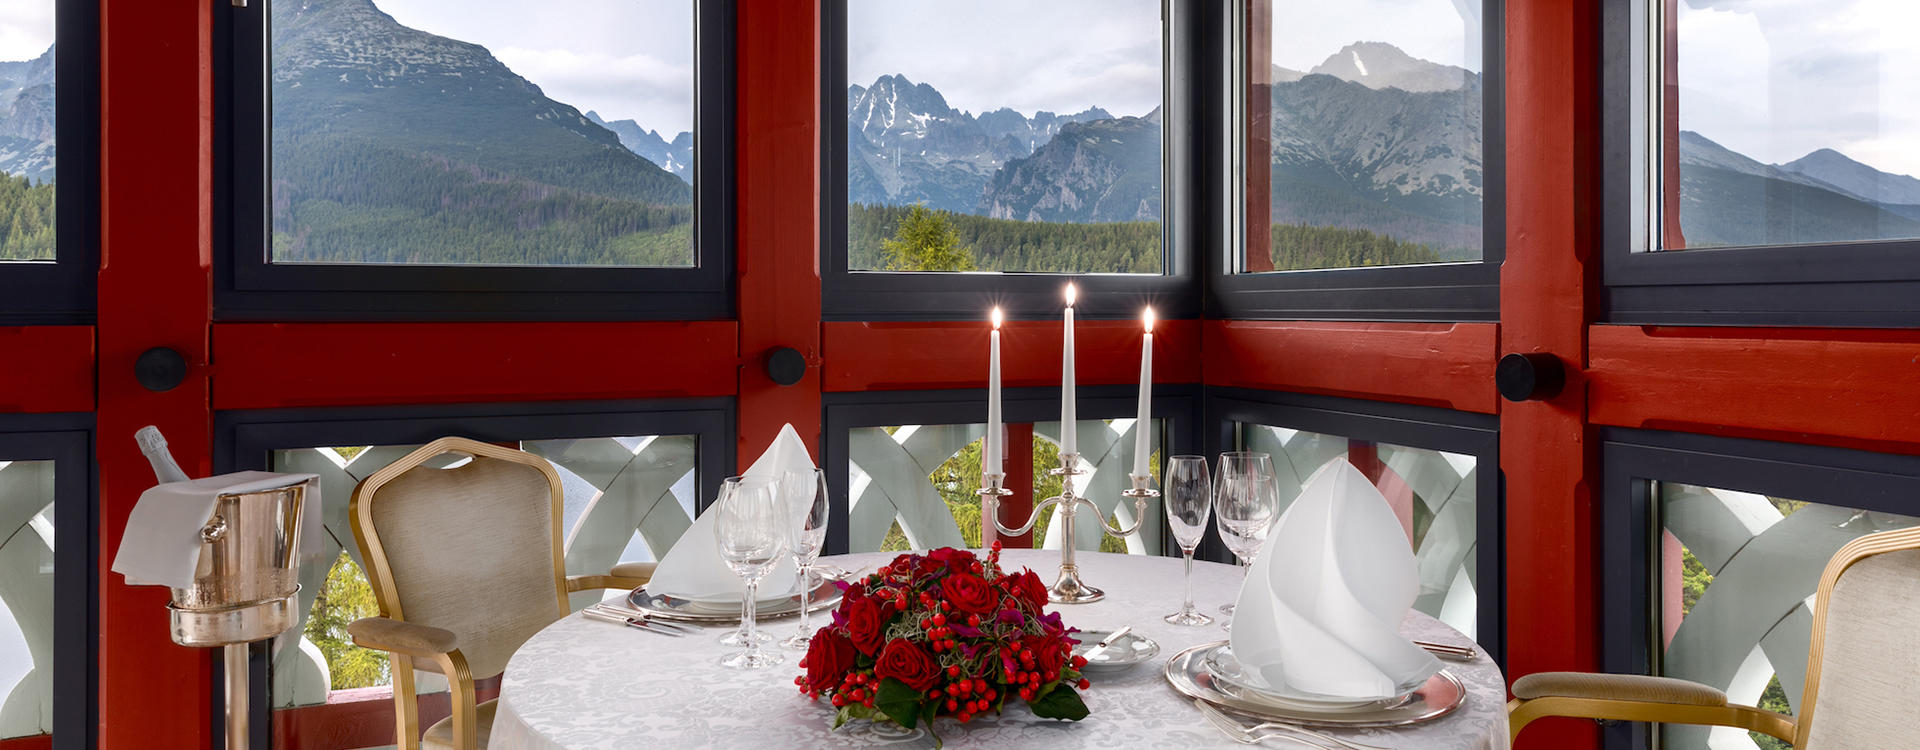 KI-High-Tatra_Romantisches-Dinner